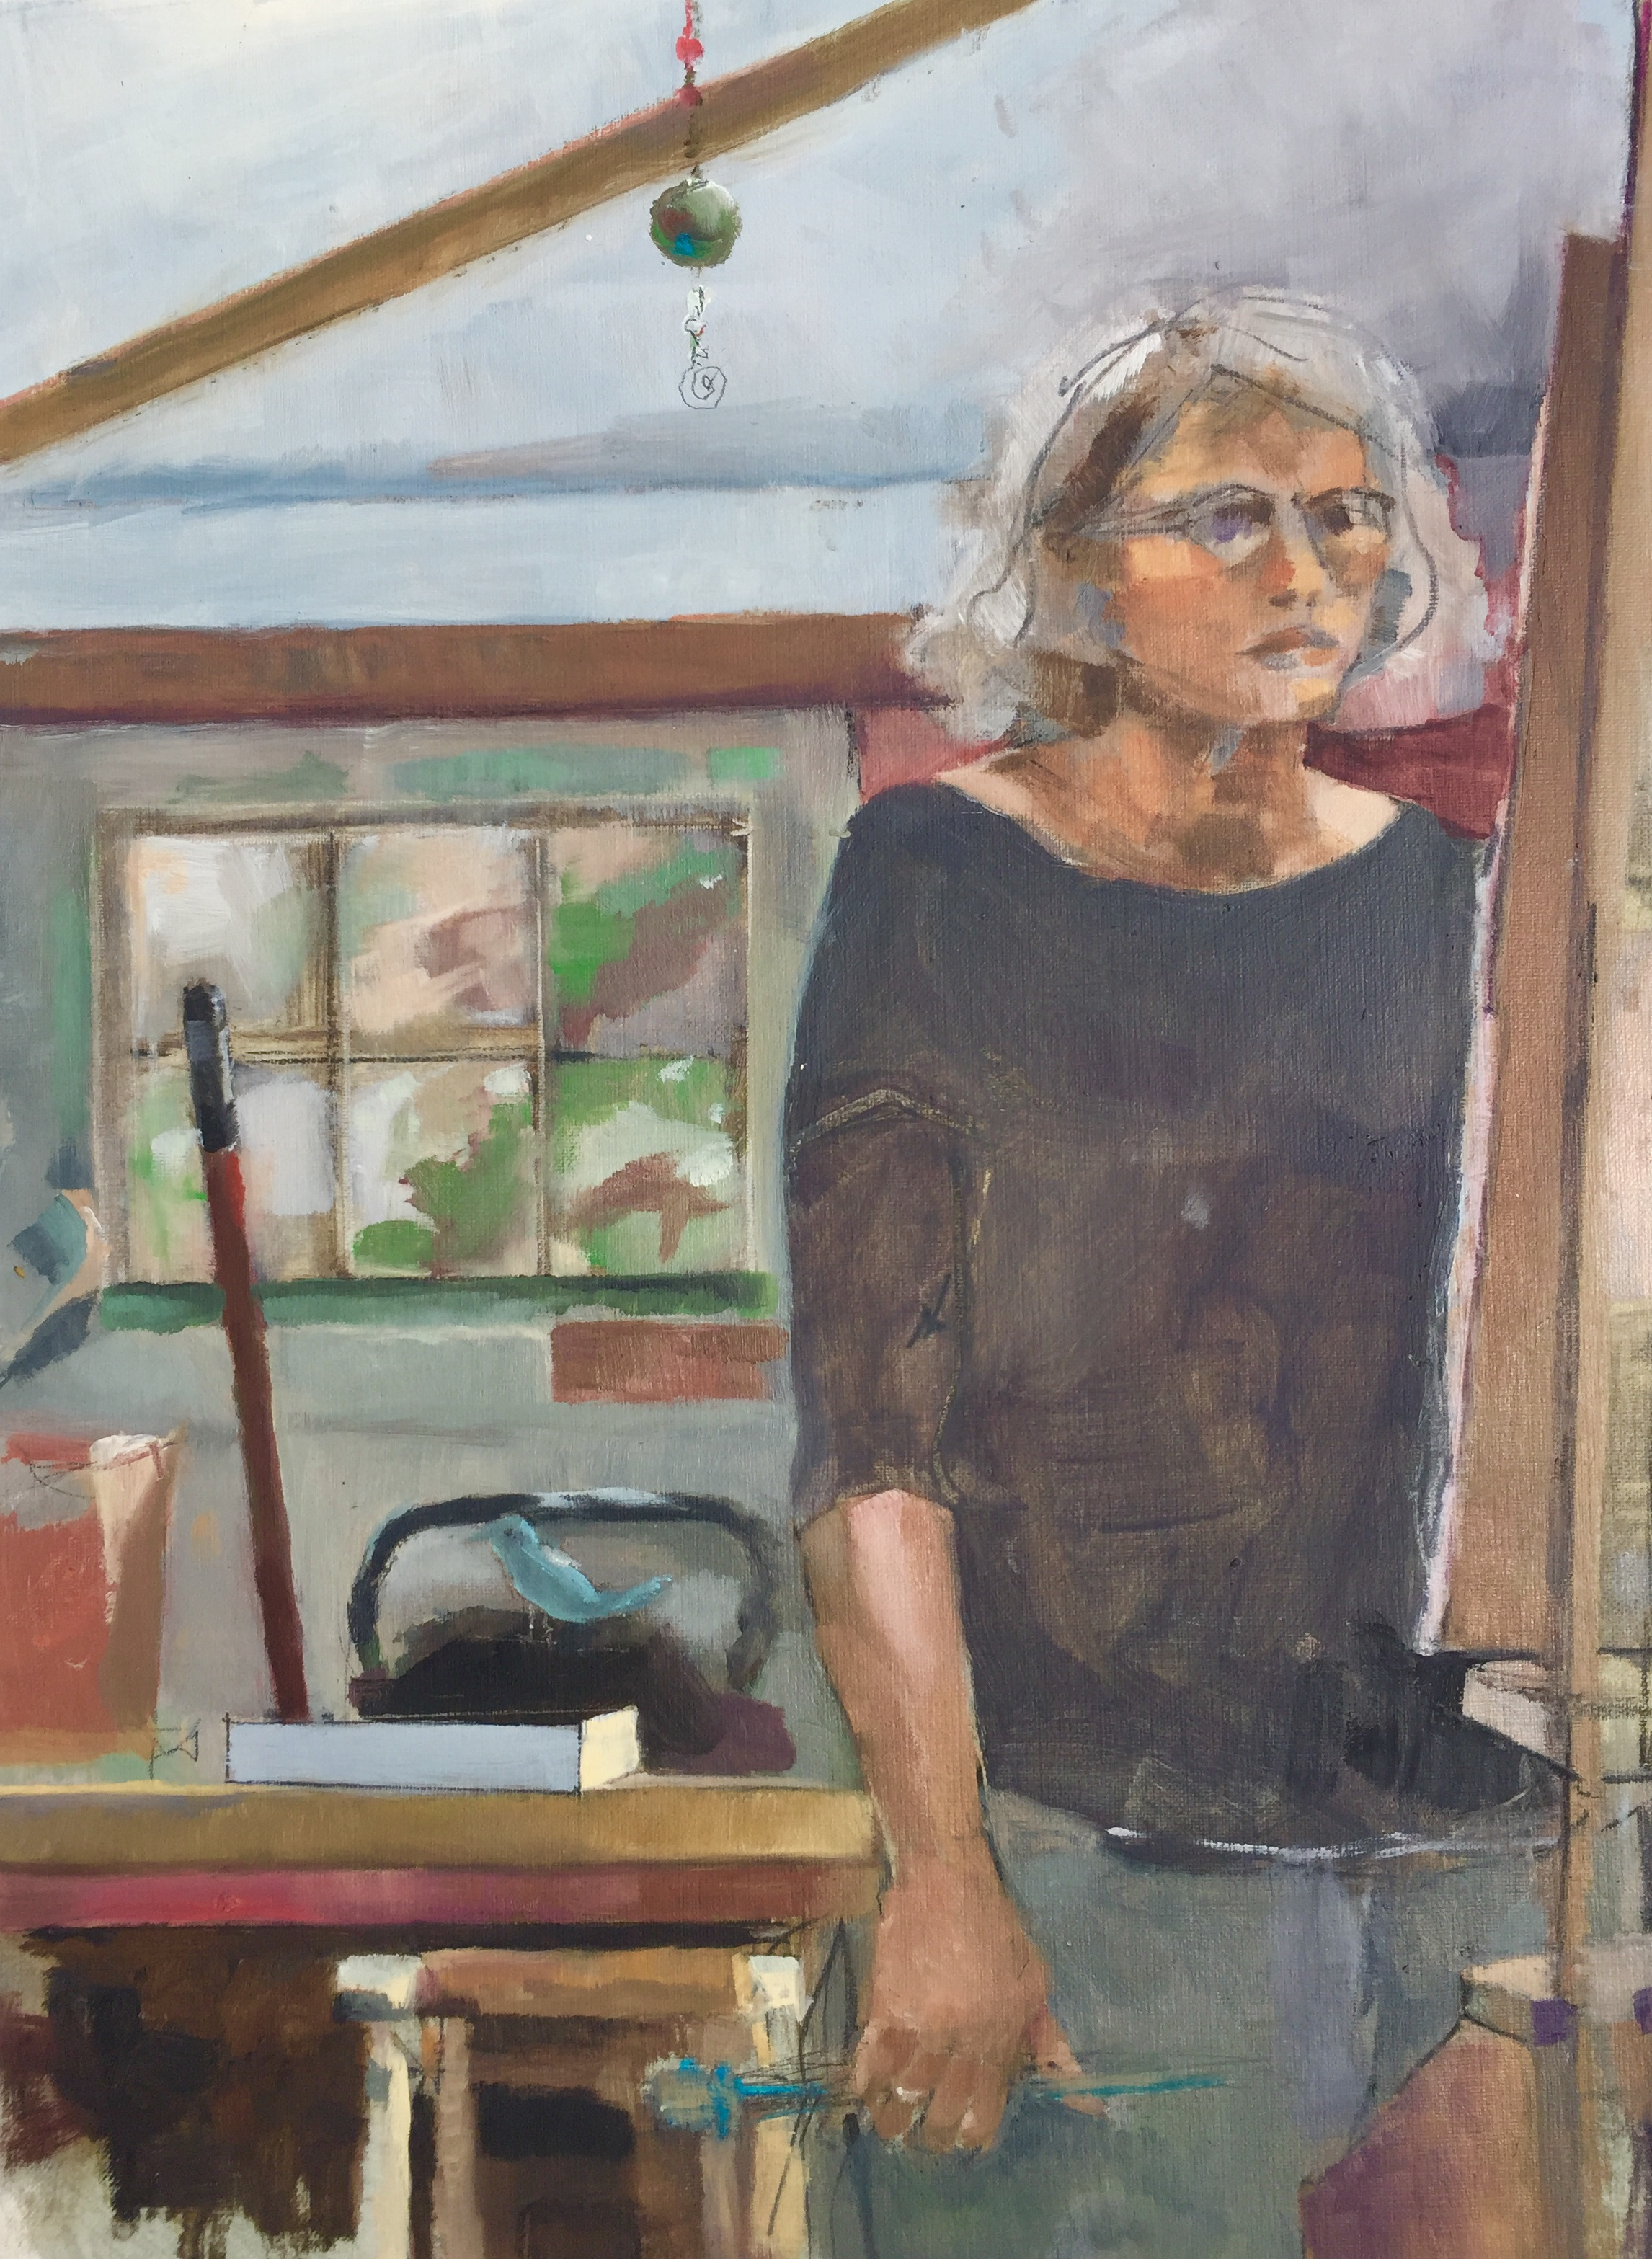 'Self in Studio World', oil on paper by Nancy Hamlin-Vogler (NFS) ⎼ 'This painting is part of a series of self portraits in the studio, while practicing oil painting techniques. I have quite a penchant for mirror reflections while observing light and shadow details. I have a readily available model for these studies! Not yet for sale.'